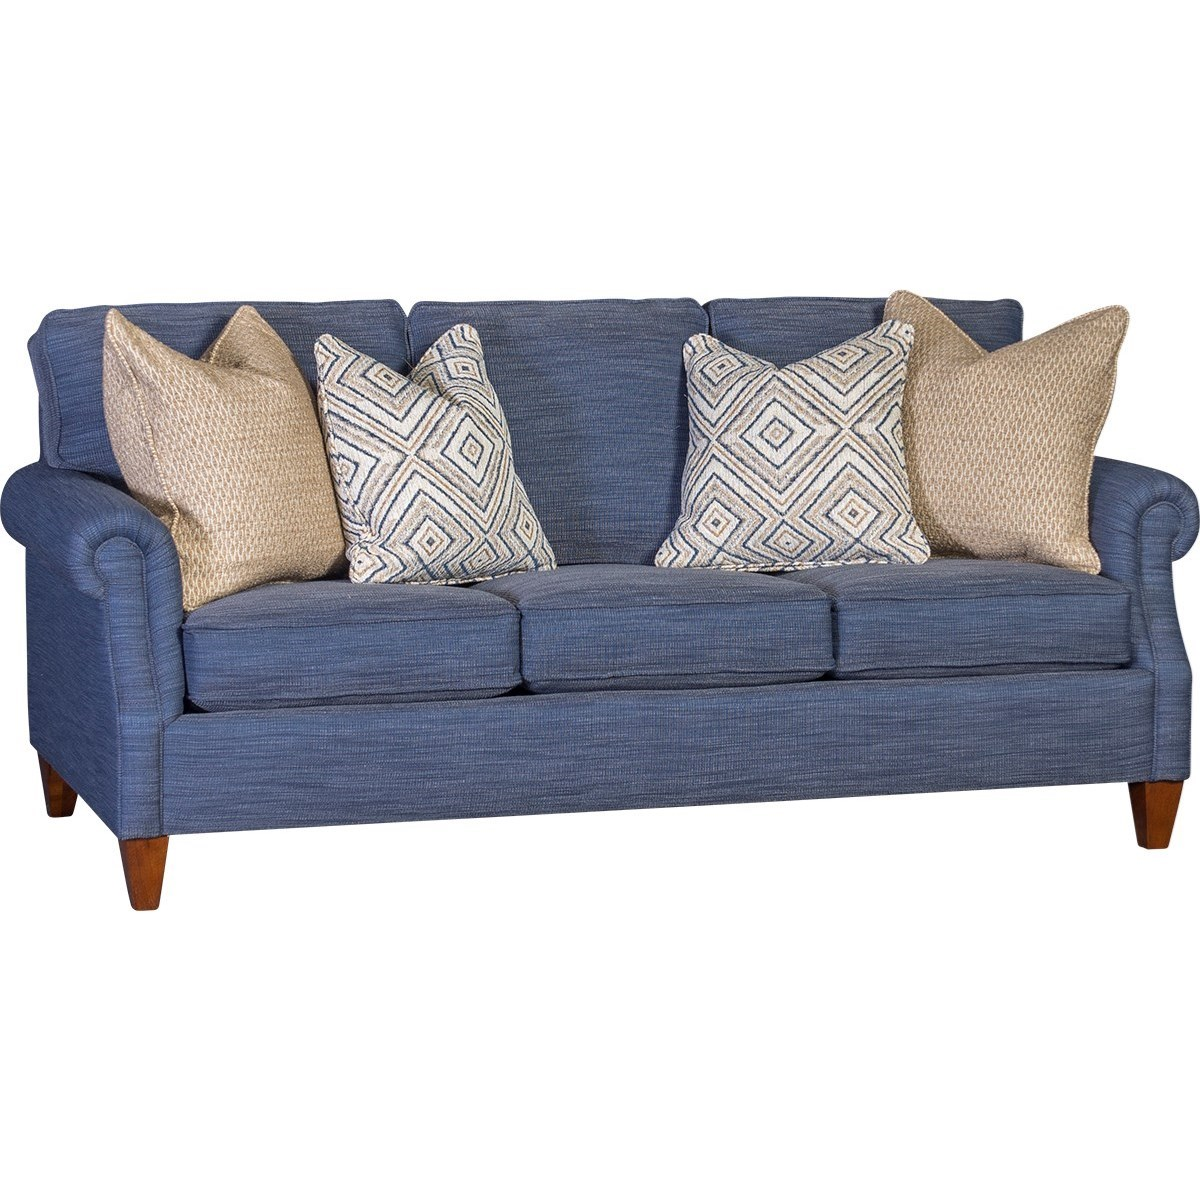 3311 Transitional Sofa by Mayo at Story & Lee Furniture